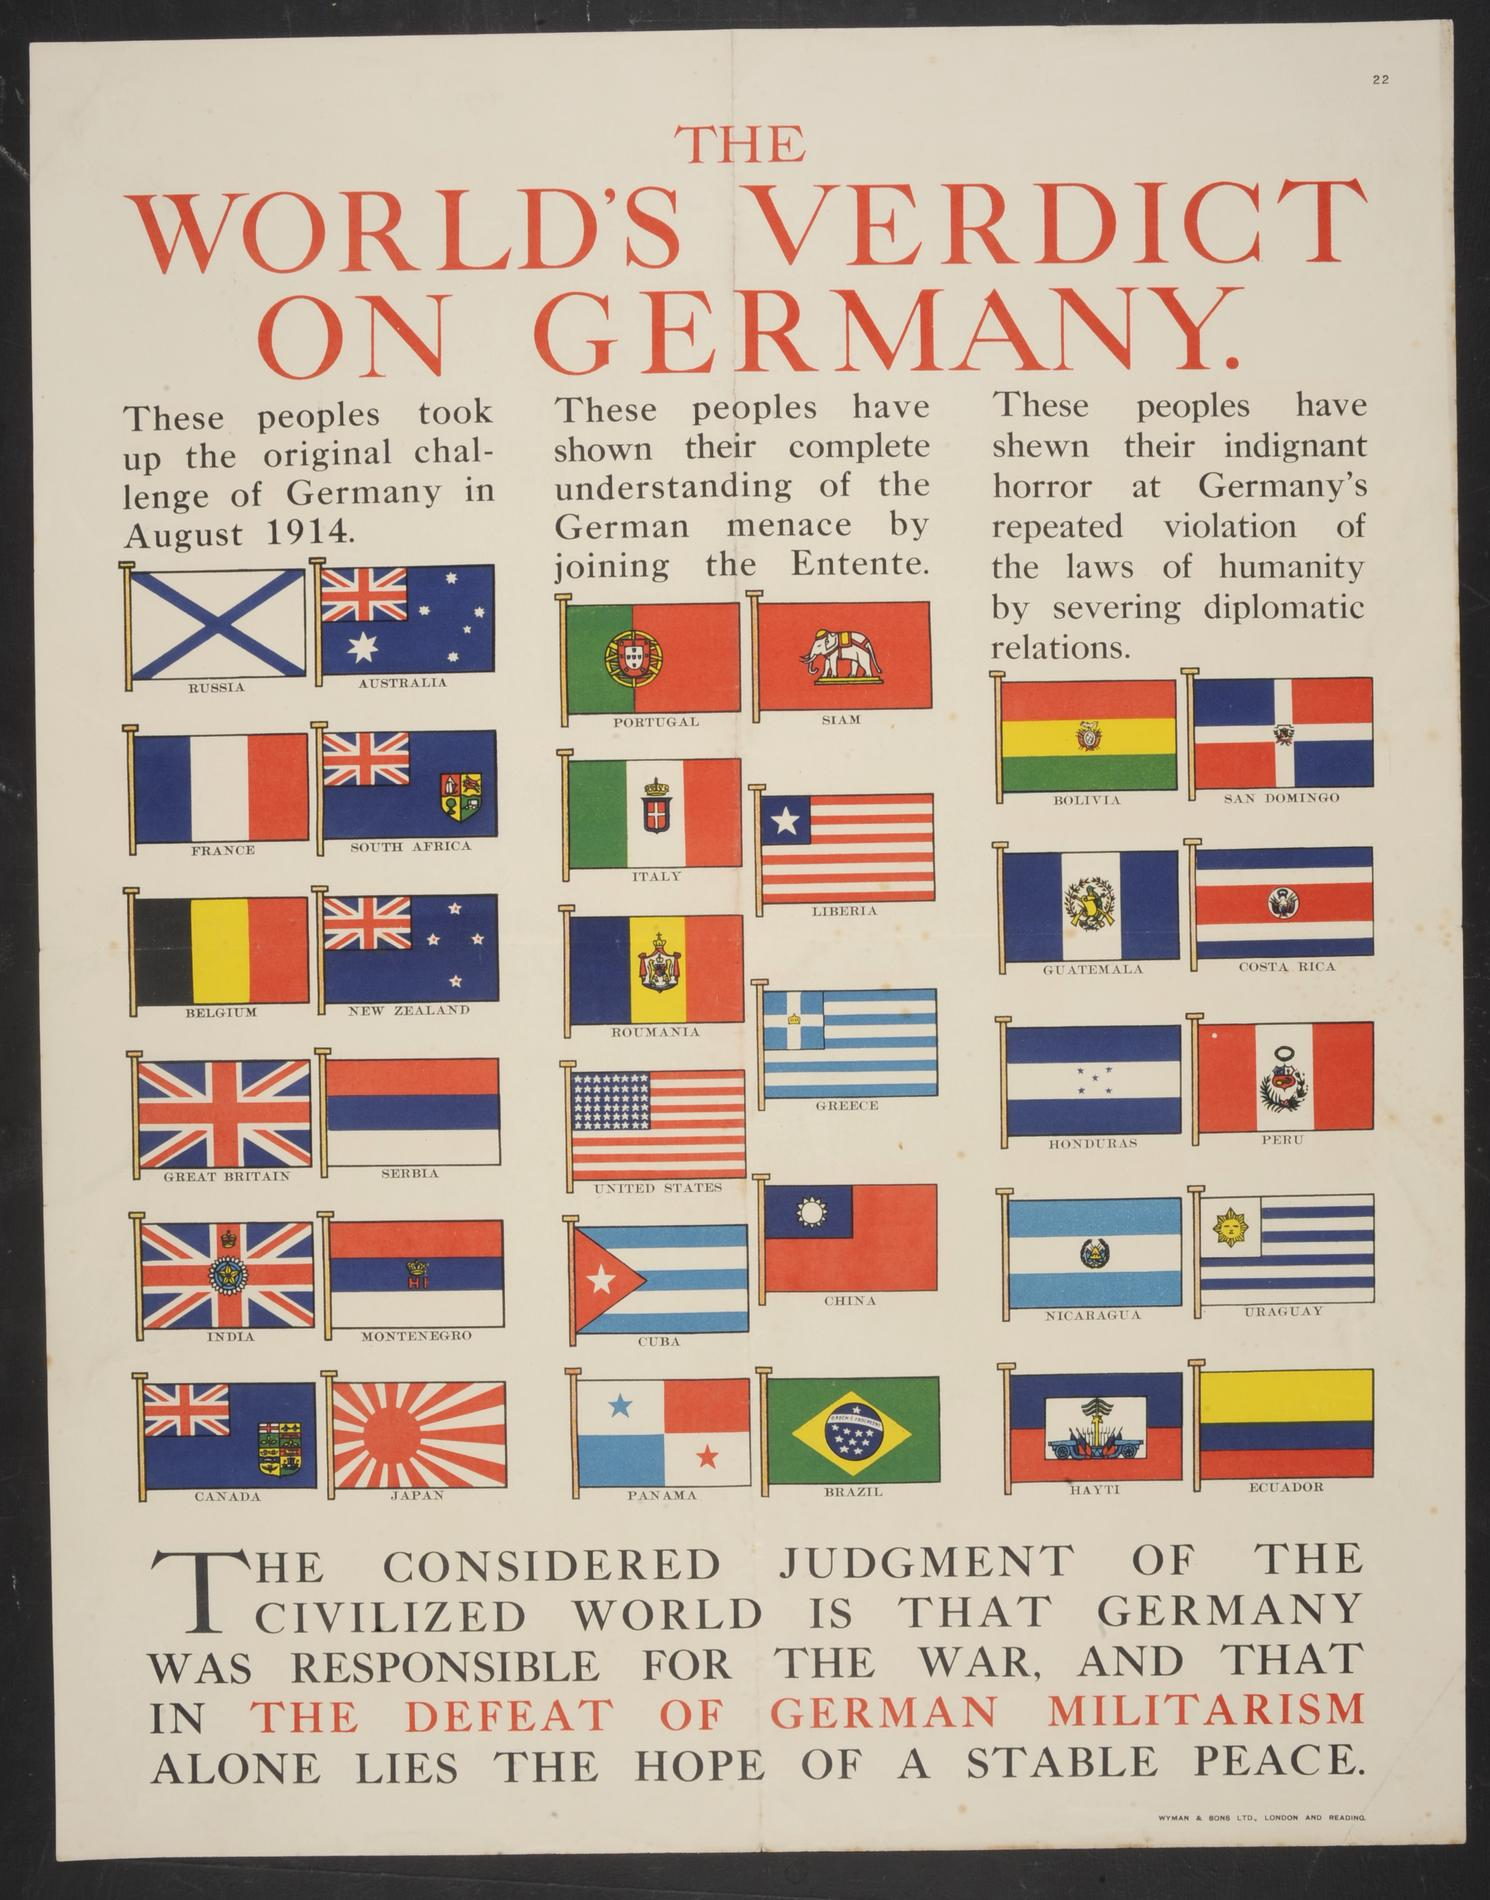 The World's Verdict on Germany (Poster)